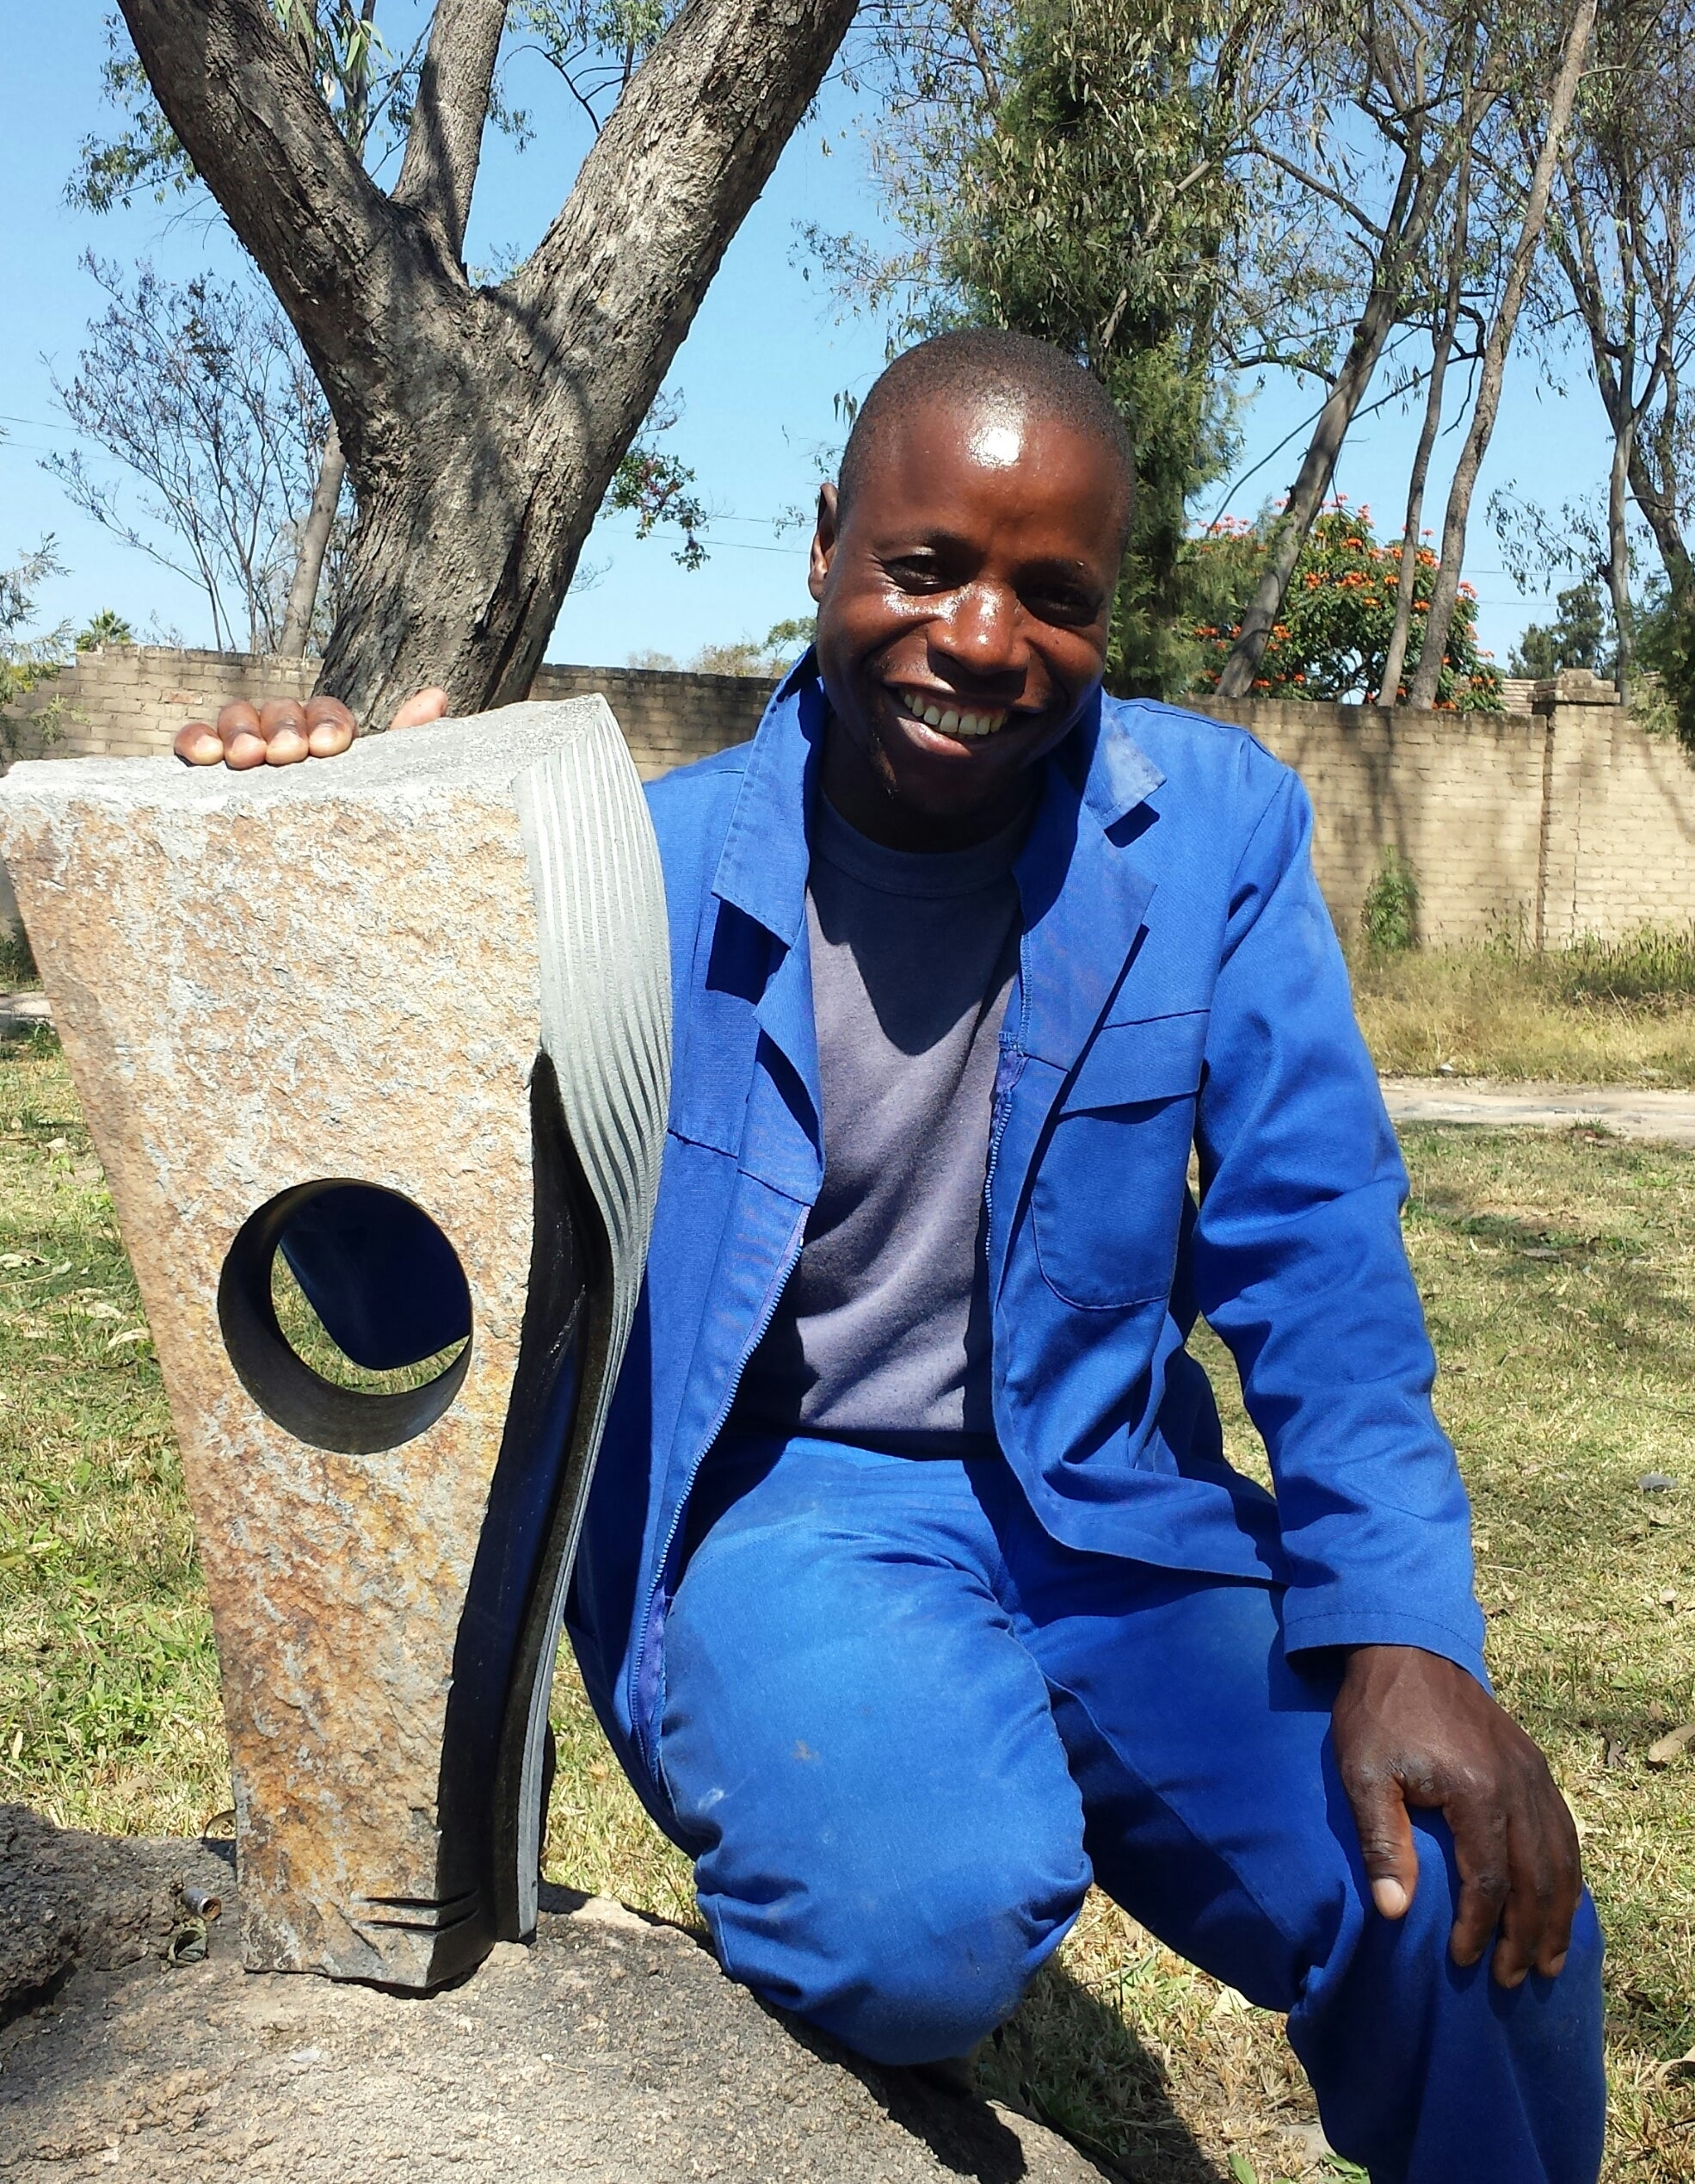 Artist Godfrey Matungamidze posing with sculpture.